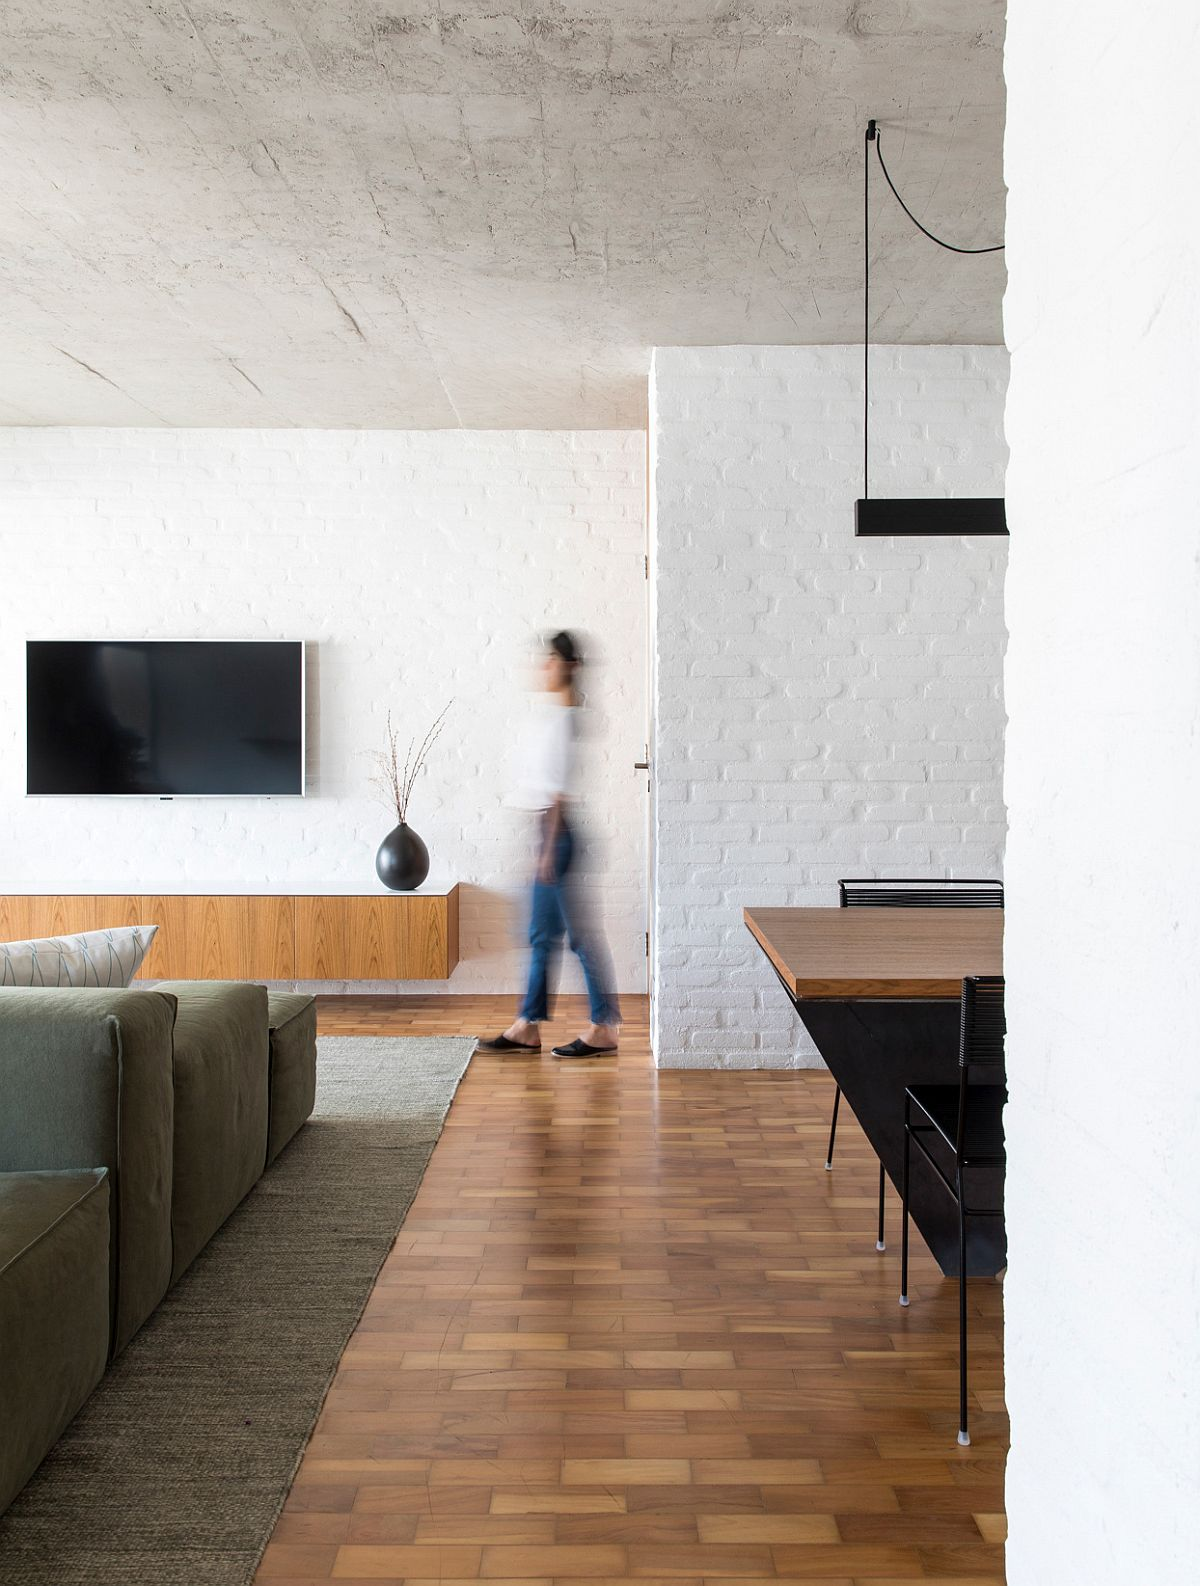 Wooden floor is combined with rugged concrete ceiling and white painted brick walls inside the apartment